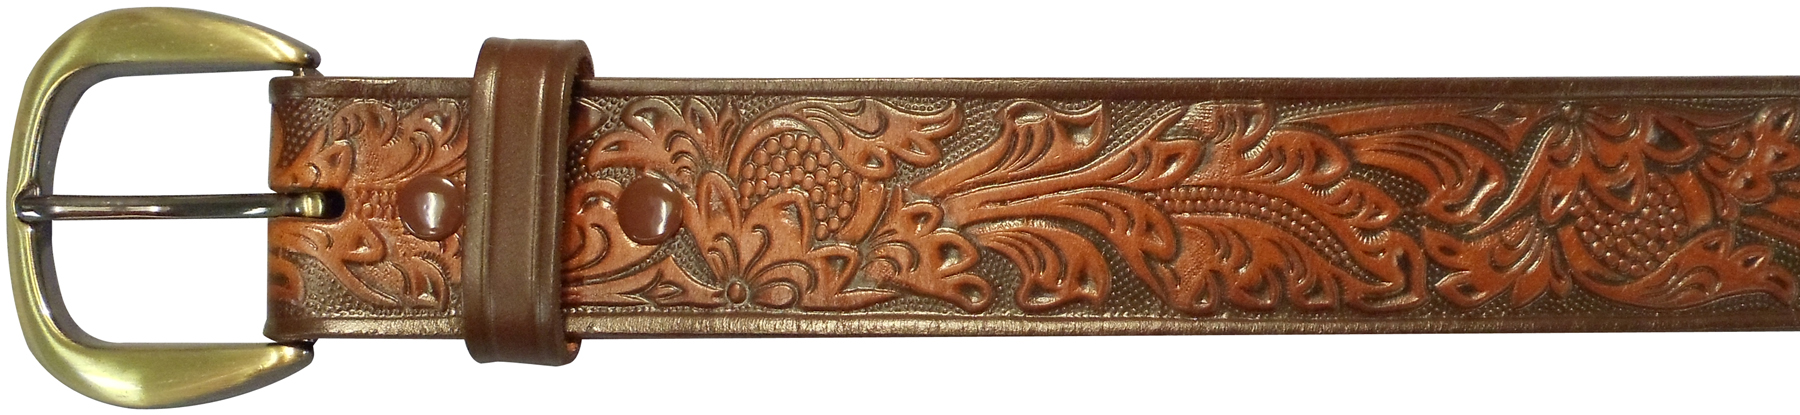 "10610110236 - 36"" Brown Leather Embossed Belt"